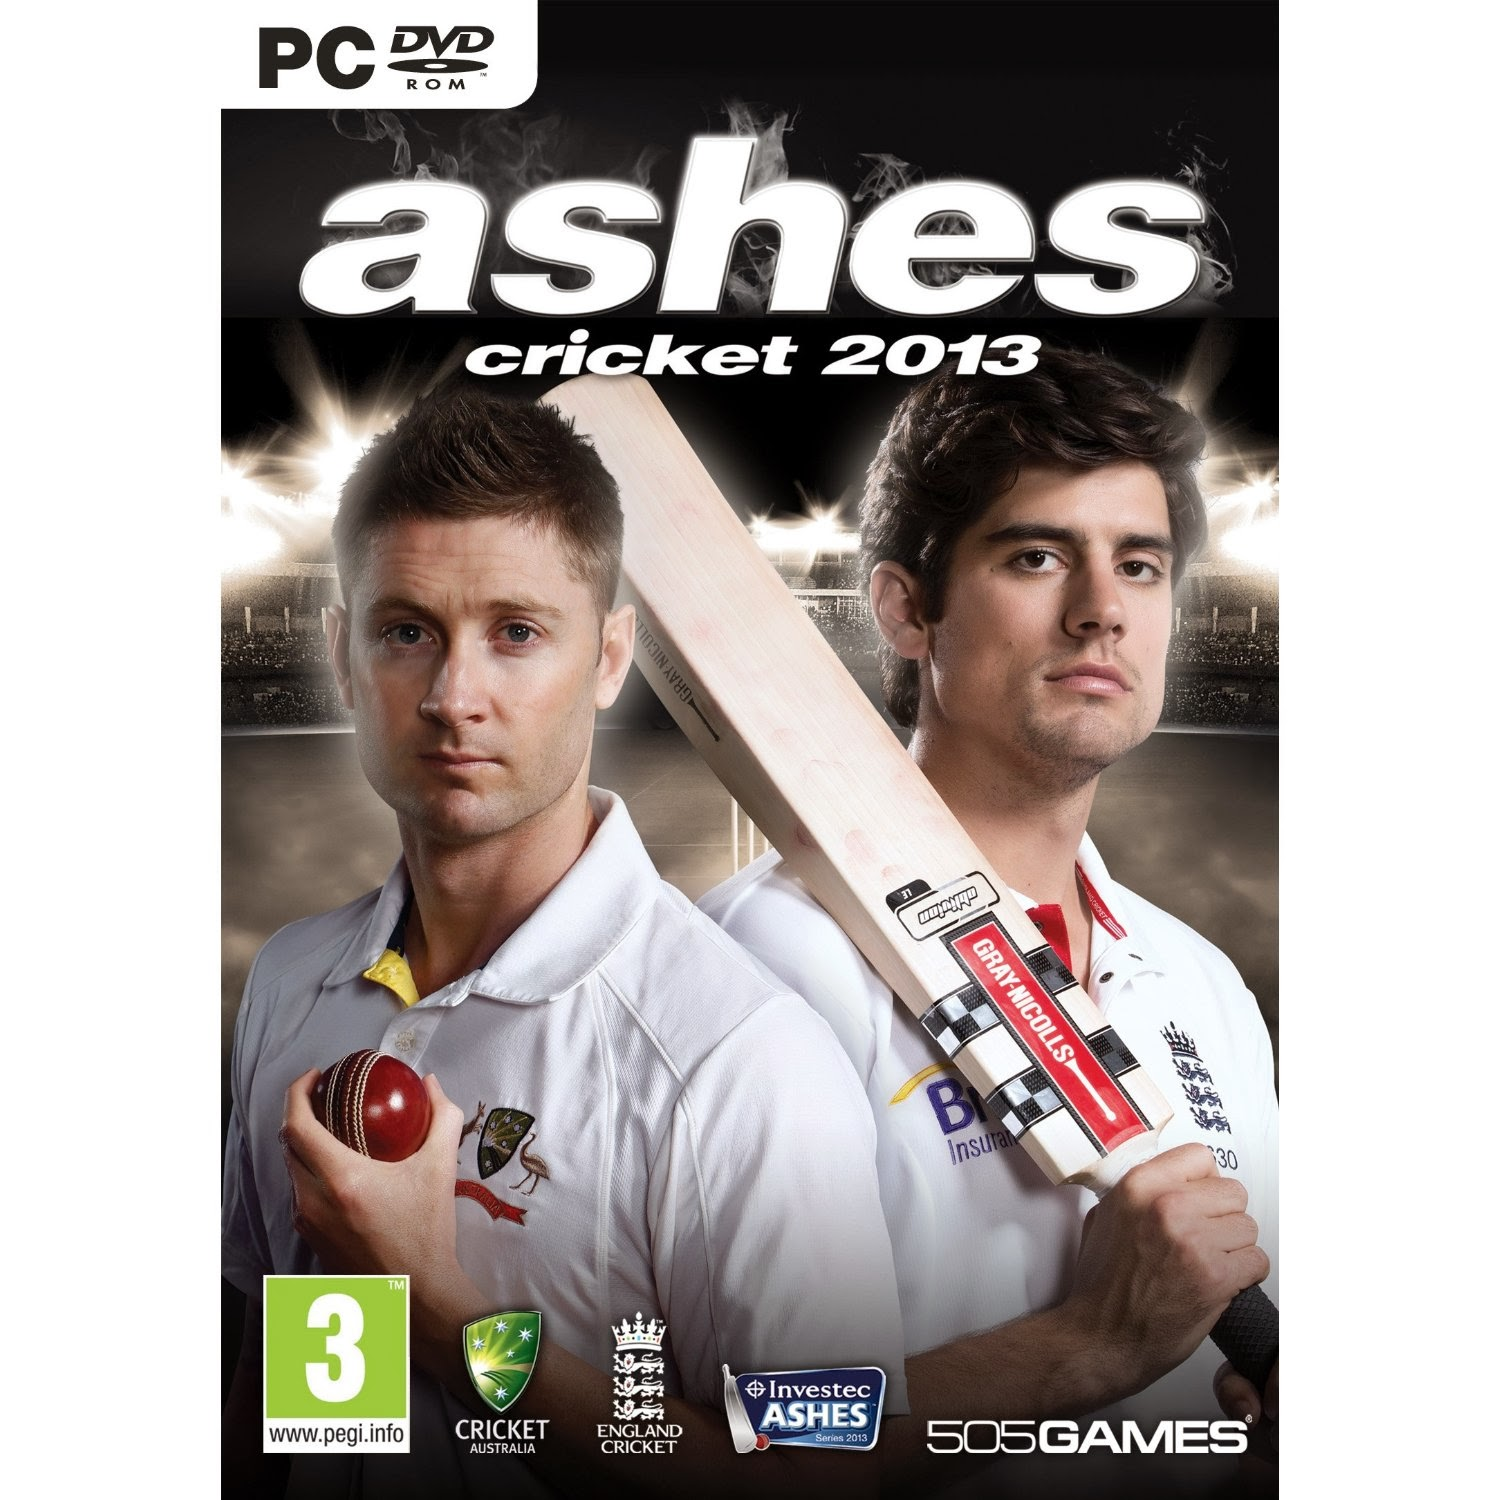 Ashes 4 Ashes Zombie Cricket - Play free online flash games